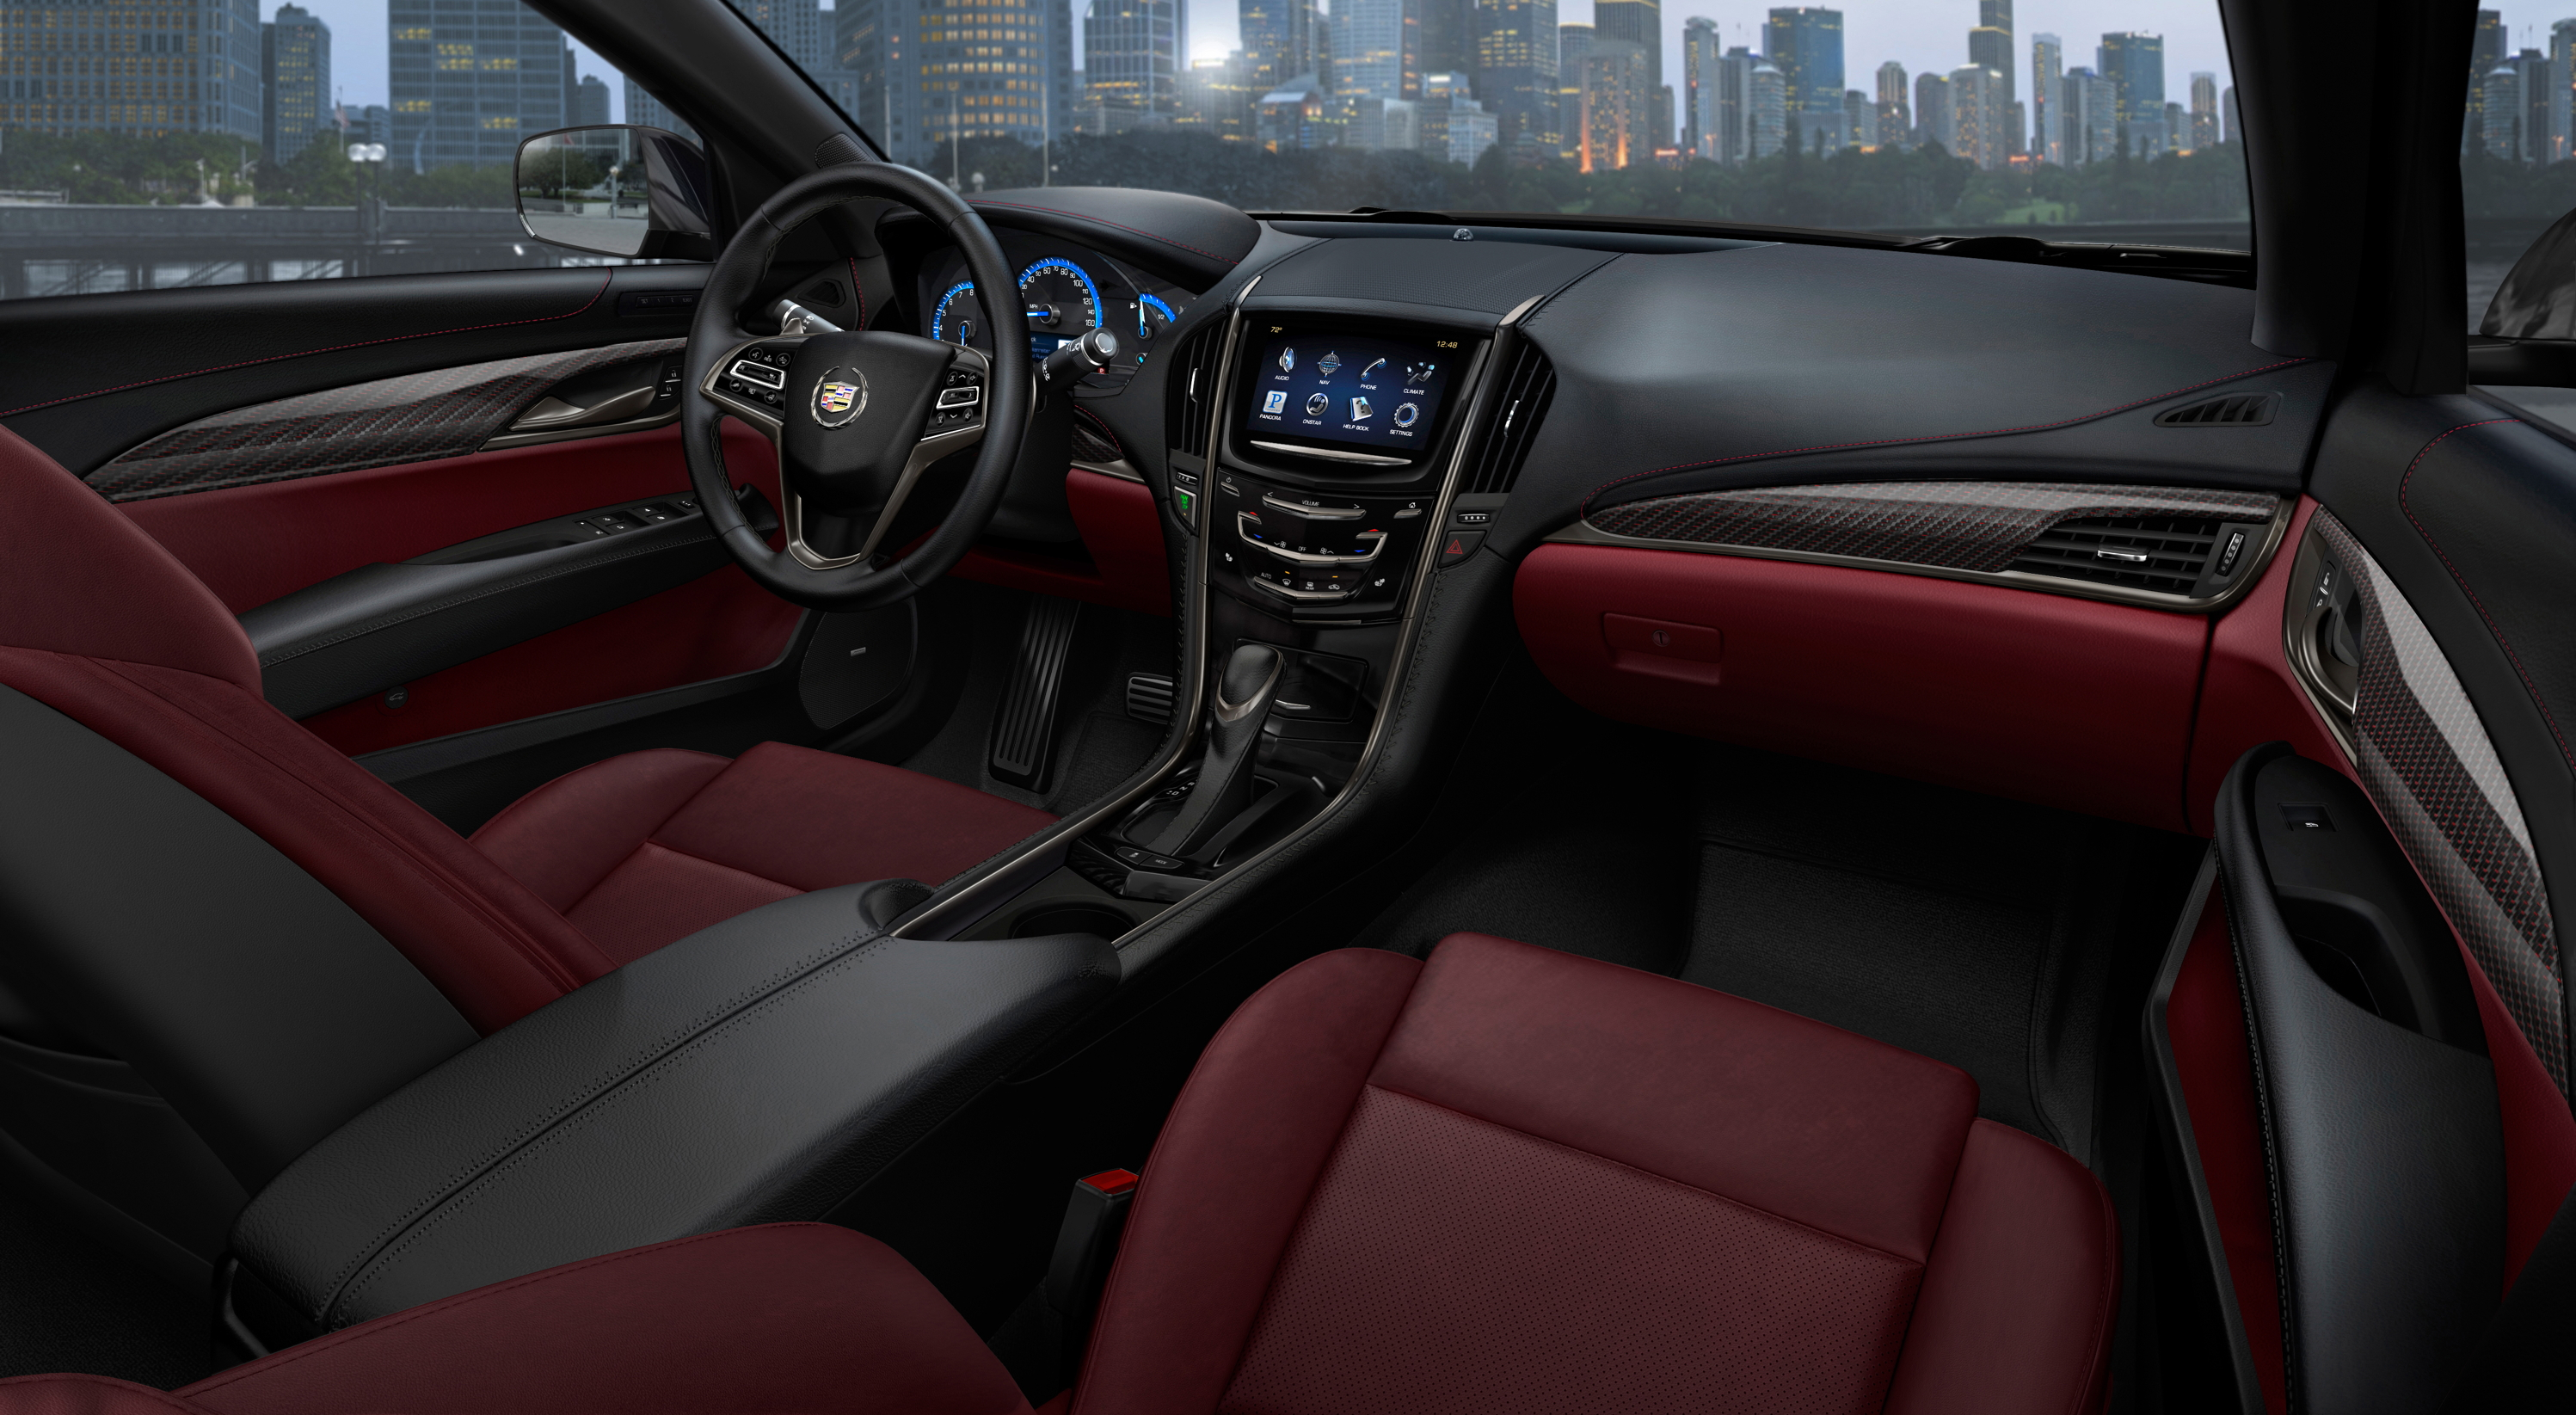 The 2013 Cadillac ATS compact luxury sedan features a driver-focused interior with thoughtfully crafted materials and the intuitively integrated CUE technology, a comprehensive in-vehicle experience that merges intuitive design with auto industry-first controls and commands for information and entertainment data. There are also seven interior color and trim combinations, complementing the dynamic exterior design elements and supporting the ATSâ?? fun-to-drive attitude.